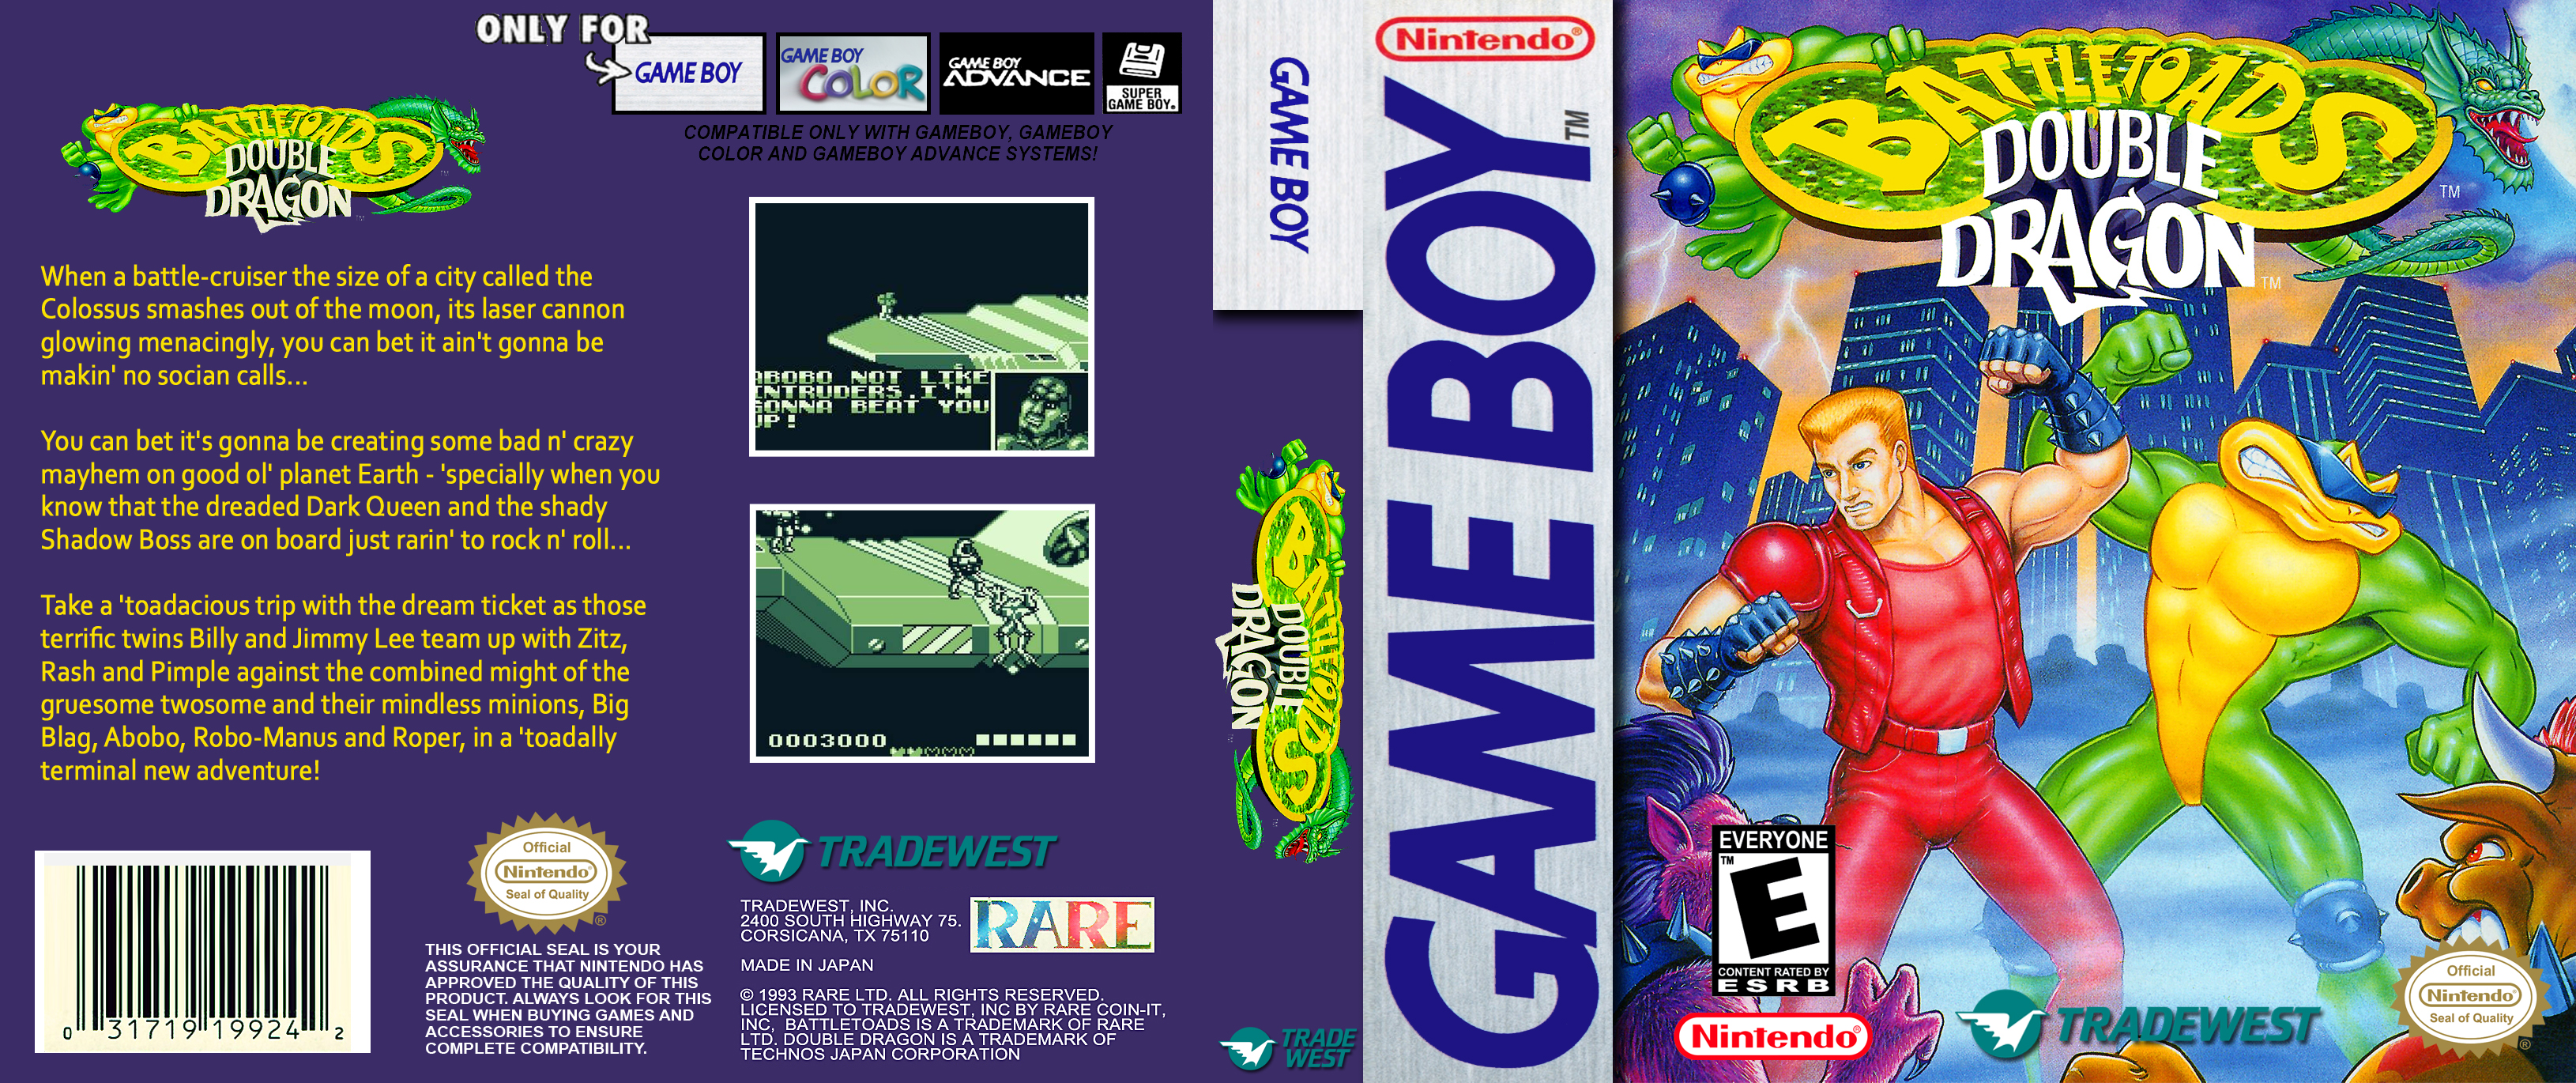 Battle Toads Double Dragon Gameboy Covers Cover Century Over 500 000 Album Art Covers For Free